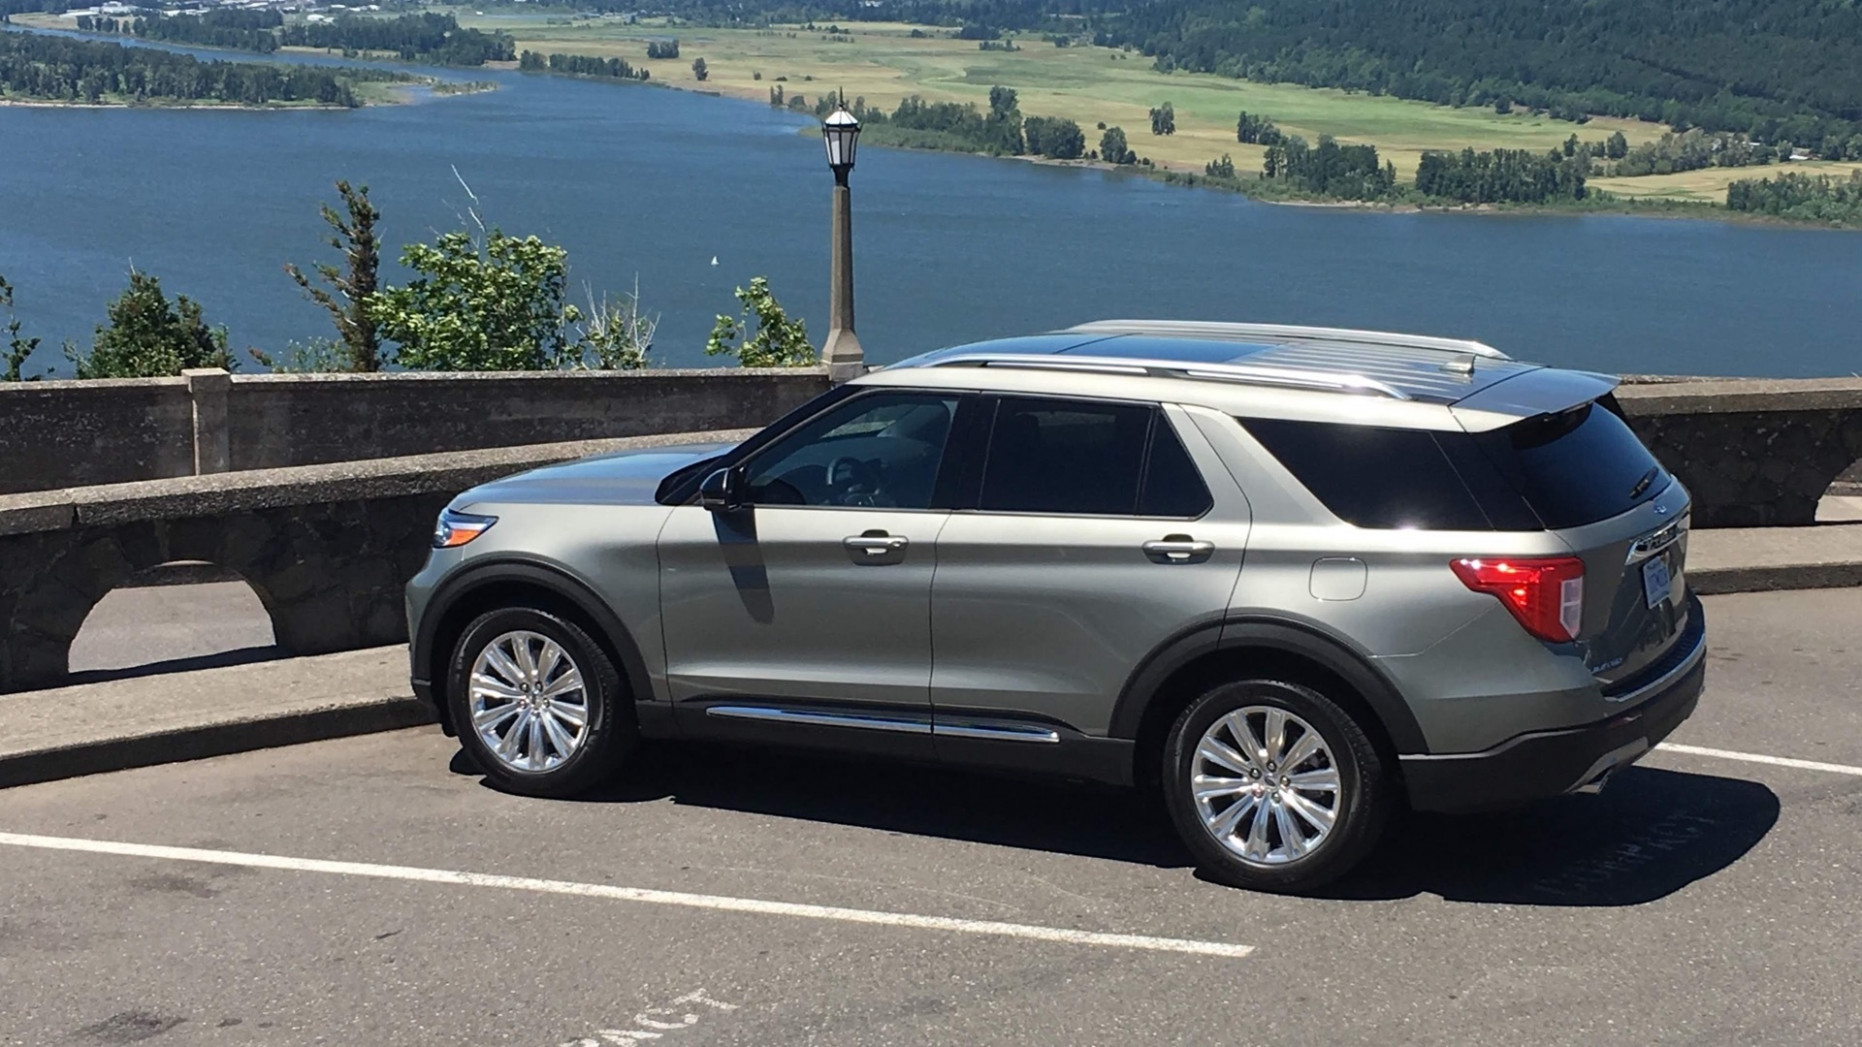 Performance Ford Usa Explorer 2022